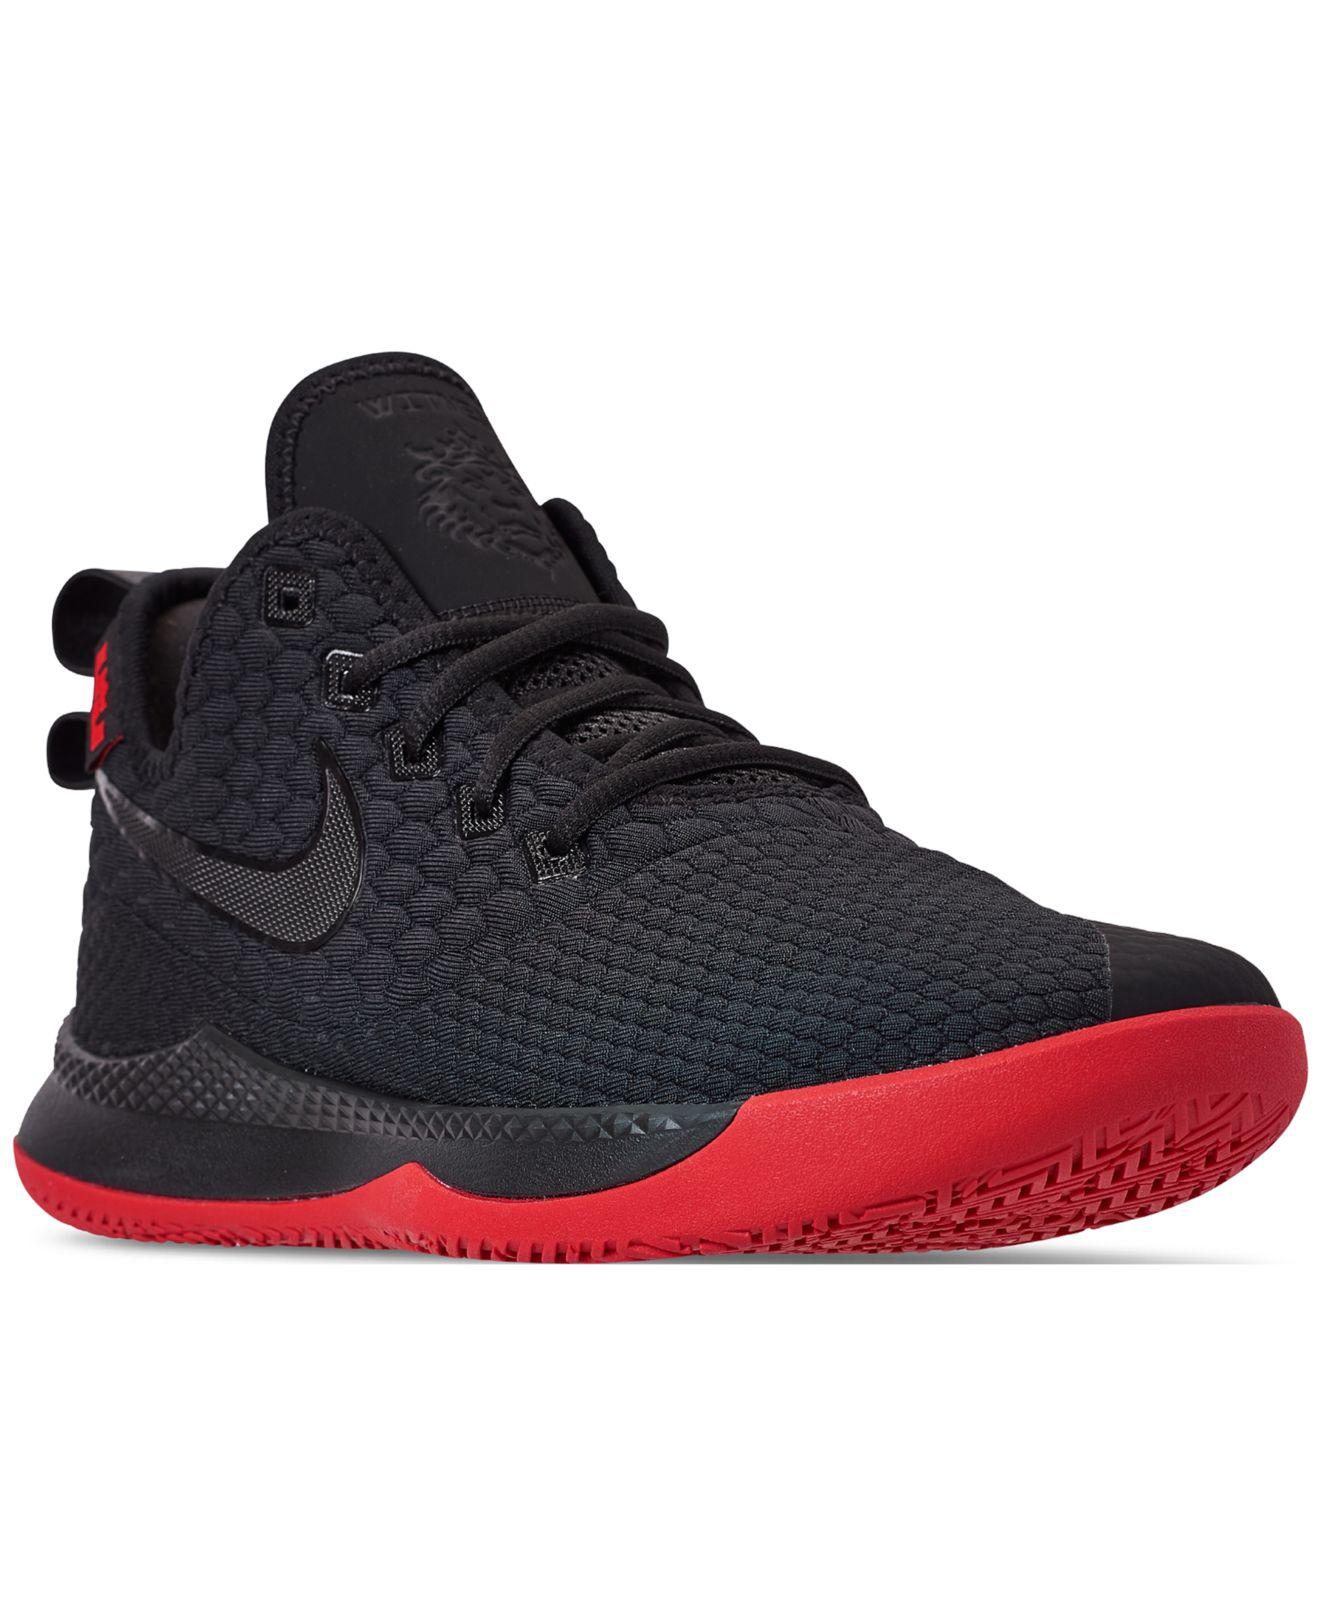 95008d8b2d5 Lyst - Nike Lebron Witness Iii Basketball Sneakers From Finish Line ...